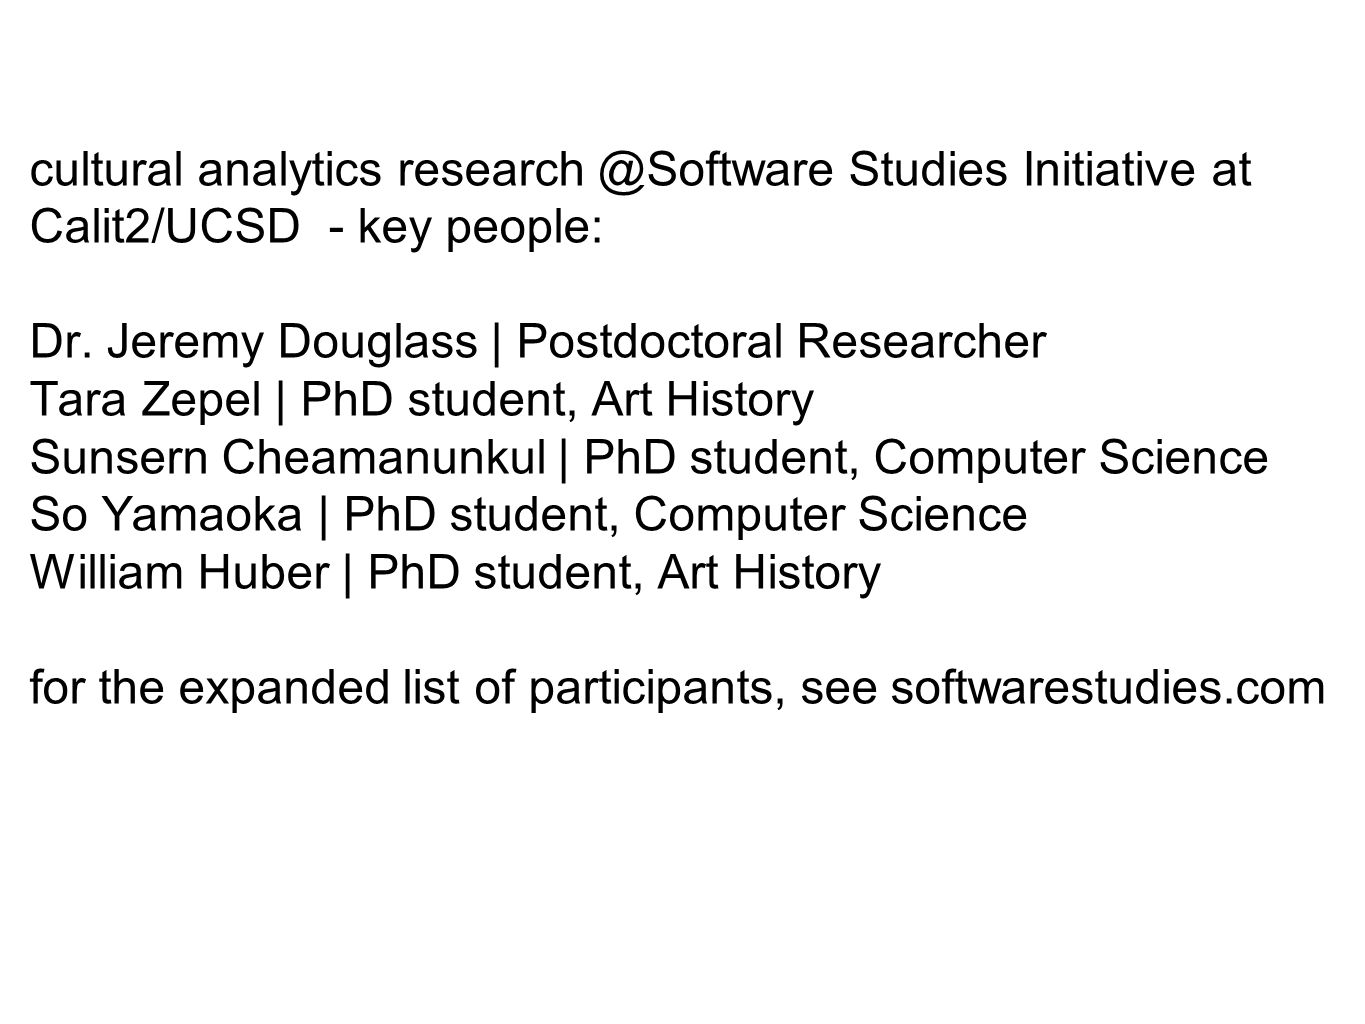 cultural analytics Studies Initiative at Calit2/UCSD - key people: Dr.